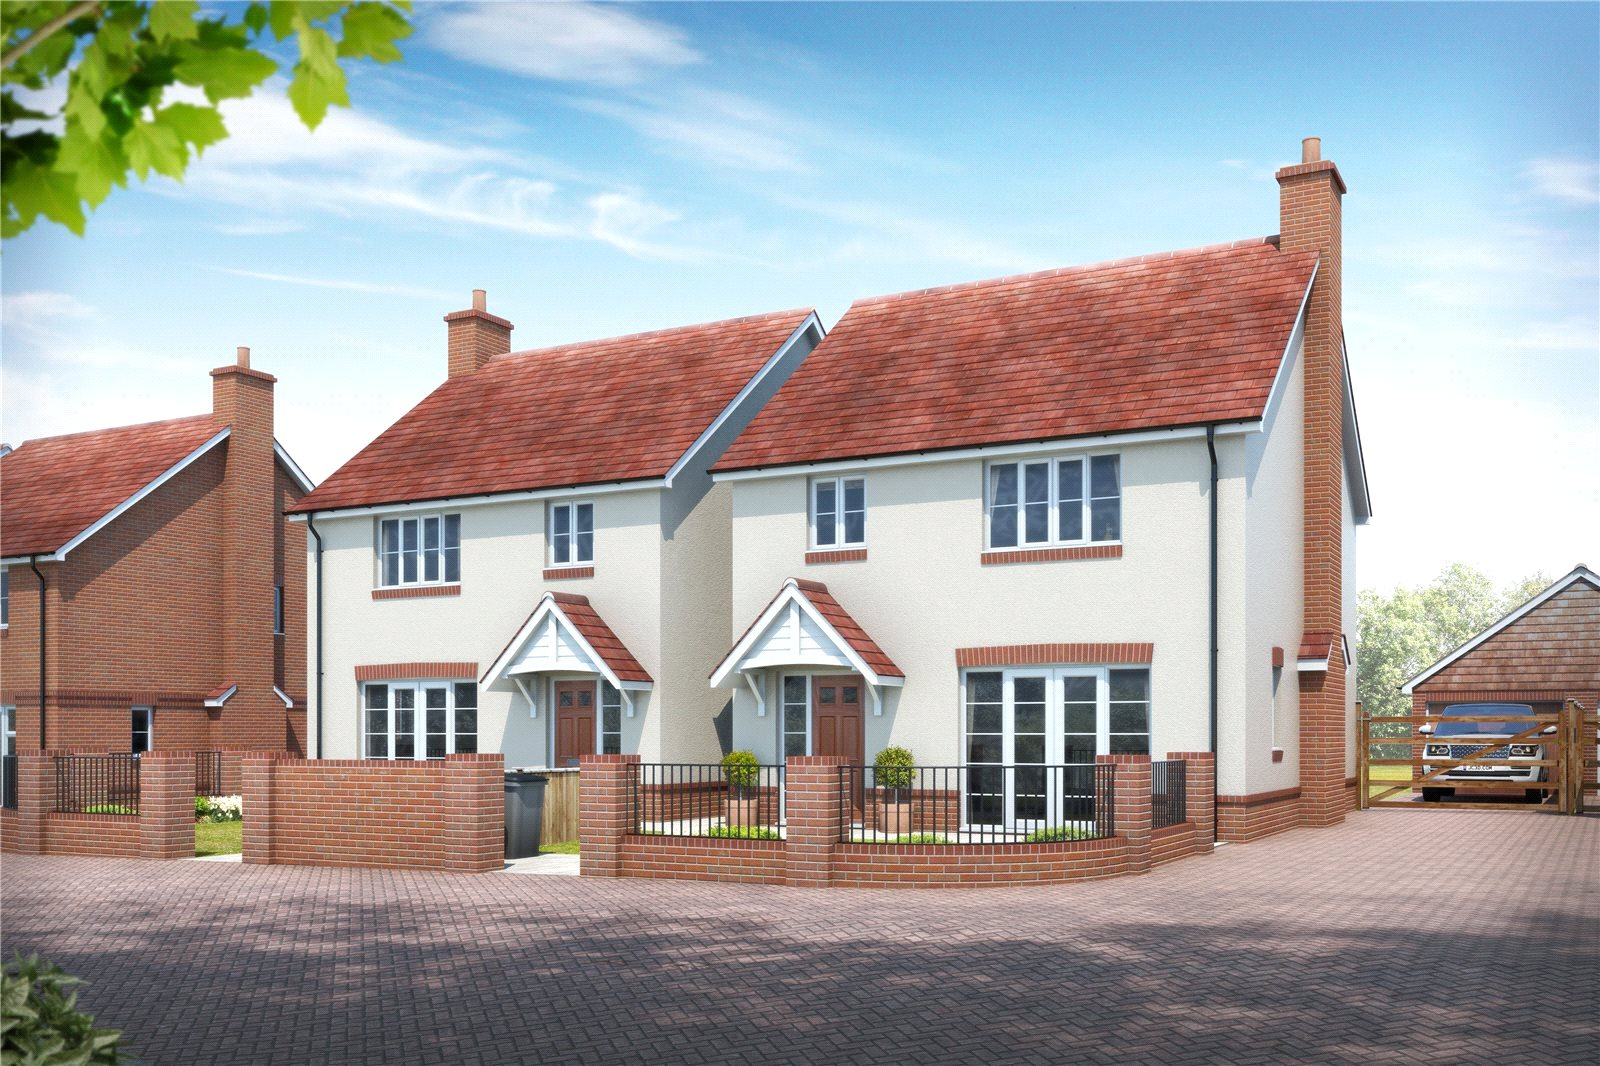 Plot 3 - 3 Bed Detached - £645,000